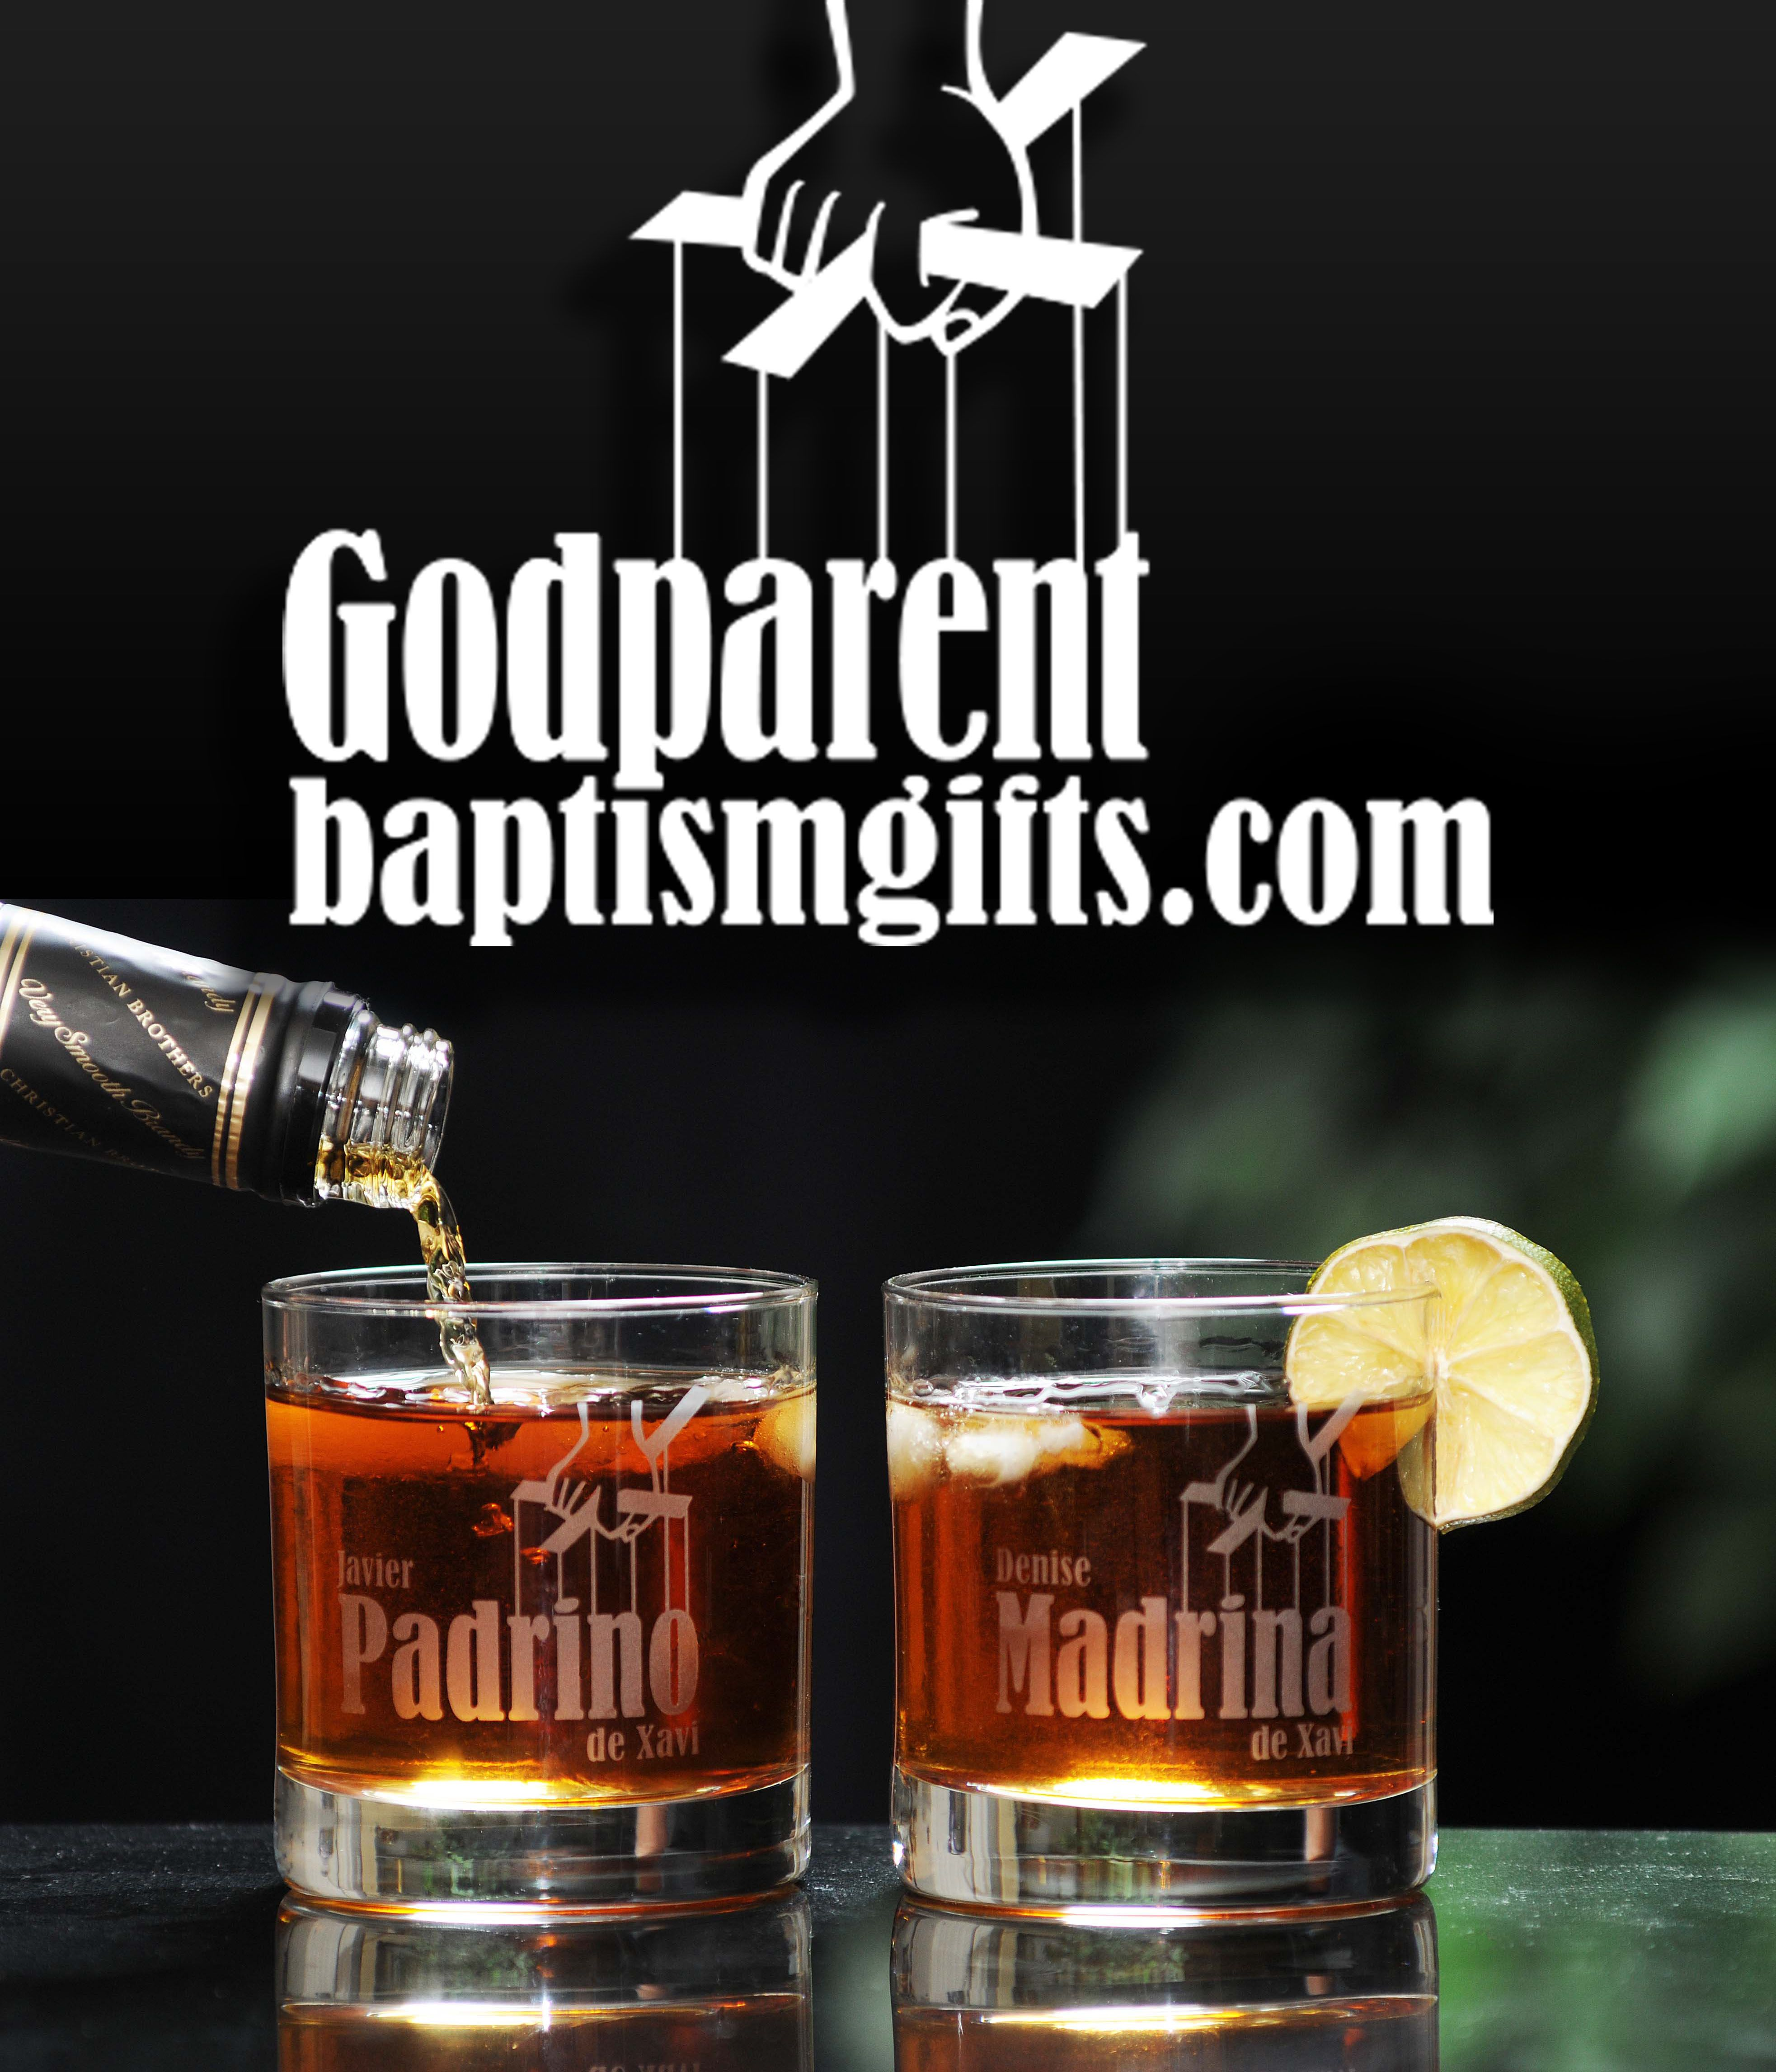 Personalized whiskey glasses for godparents will you be my personalized whiskey glasses for godparents will you be my godparent baptism gift http negle Gallery